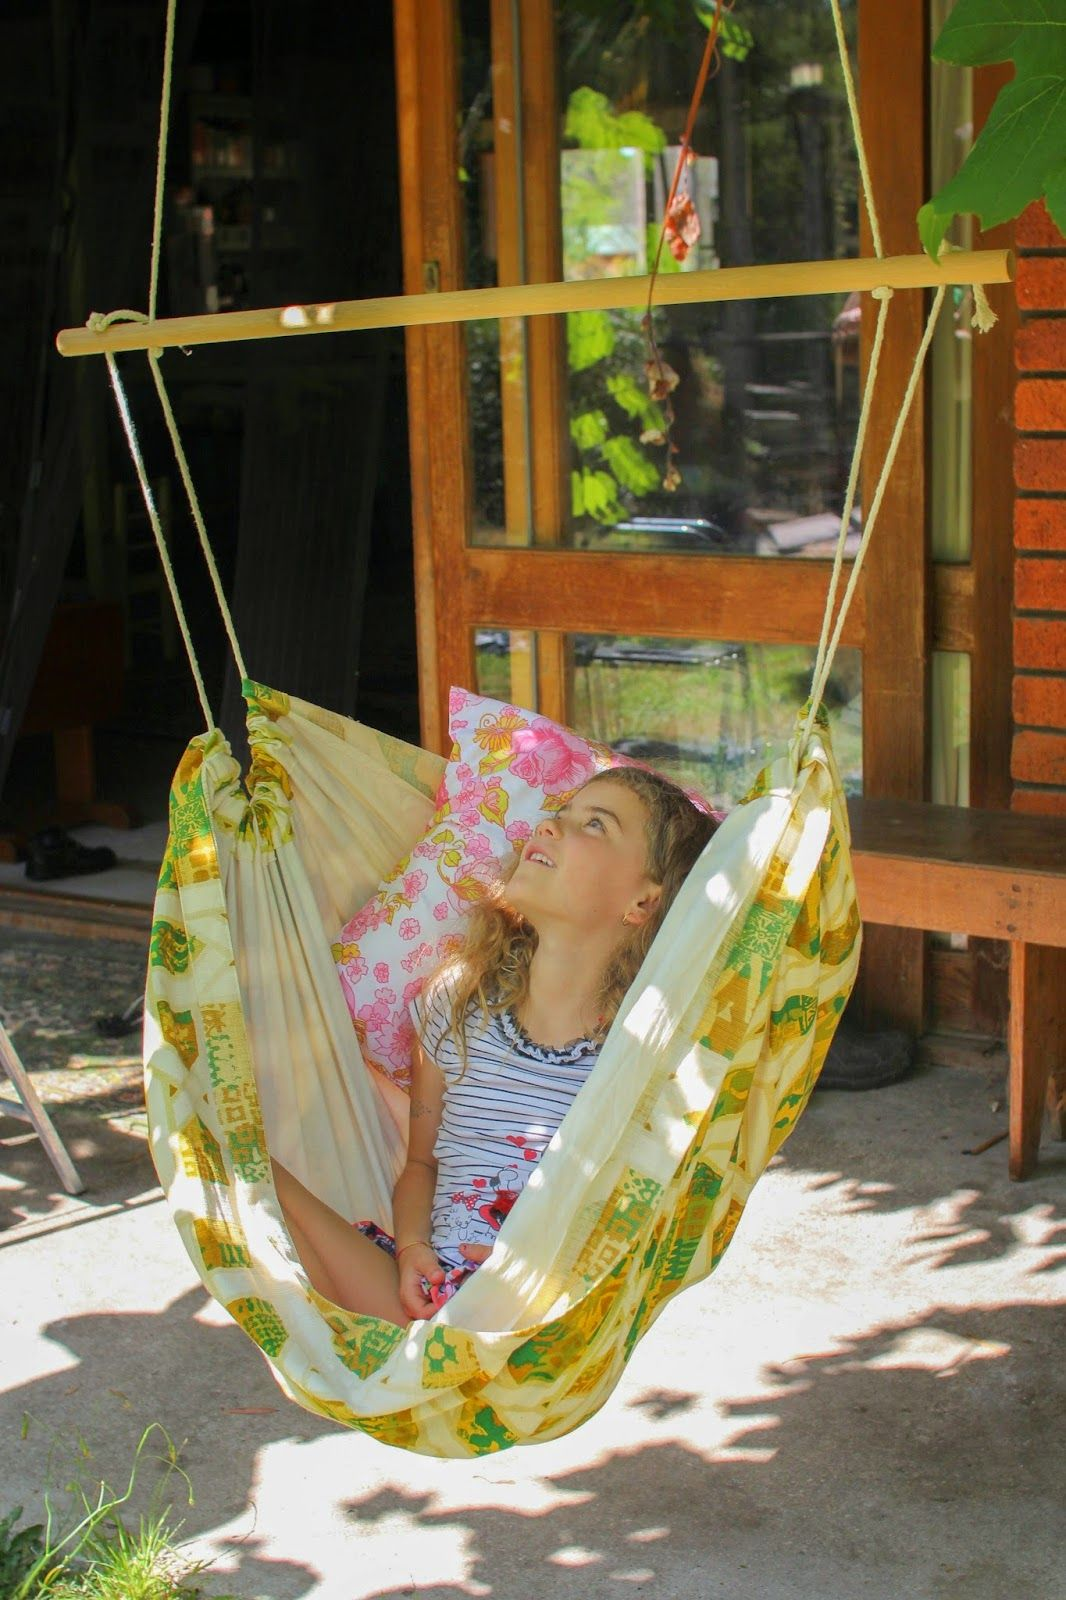 Balkon Hängematte Diy Kids Hammock Chair หองงานฝมอ 1 Pinterest Jugendbett